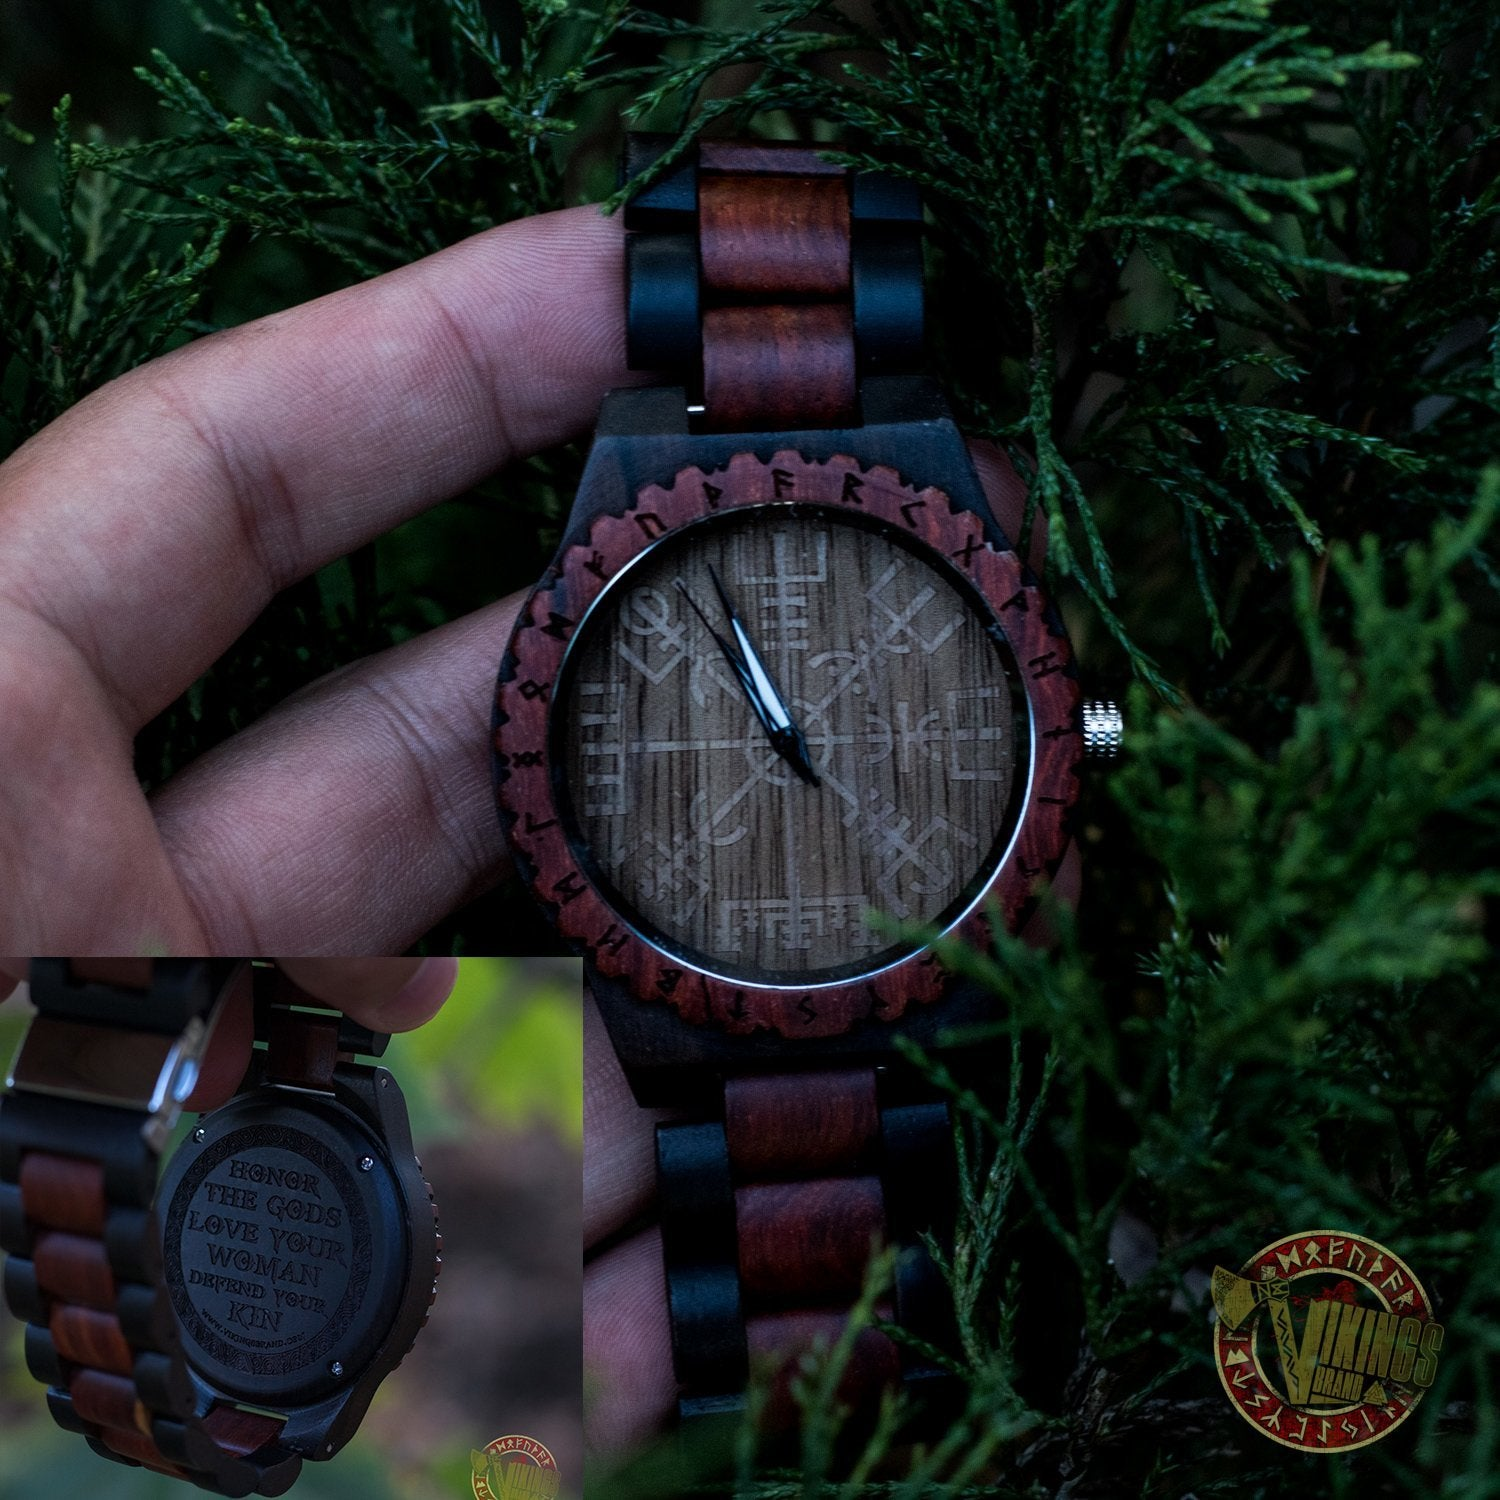 Knut Viking Wooden Watch with Vegvisir Viking Symbol & Engraved Honor the Gods, Love Your Woman, Defend Your Kin Saying - VikingsBrand